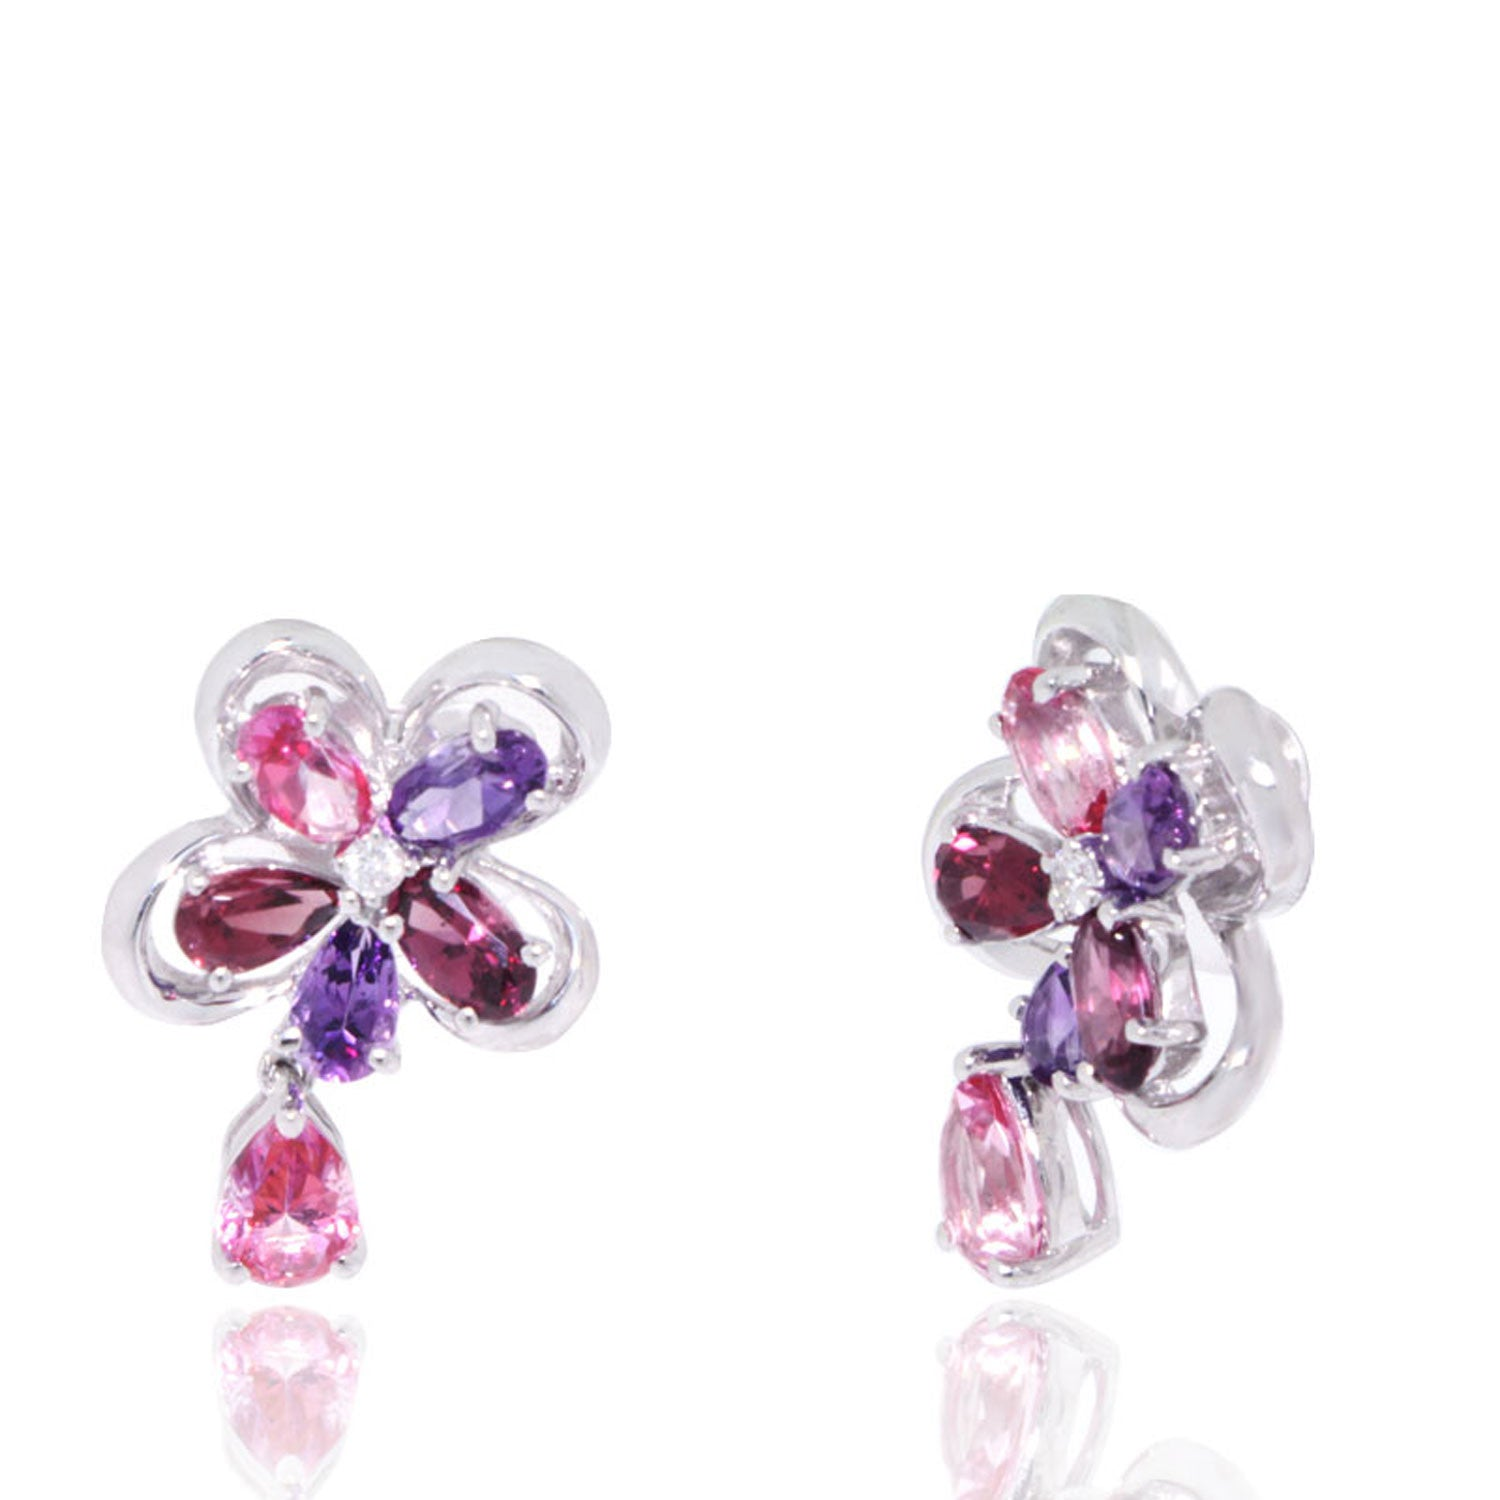 Garnet & Amethyst Flower Earrings With Pink Topaz Drops White Gold Earrings